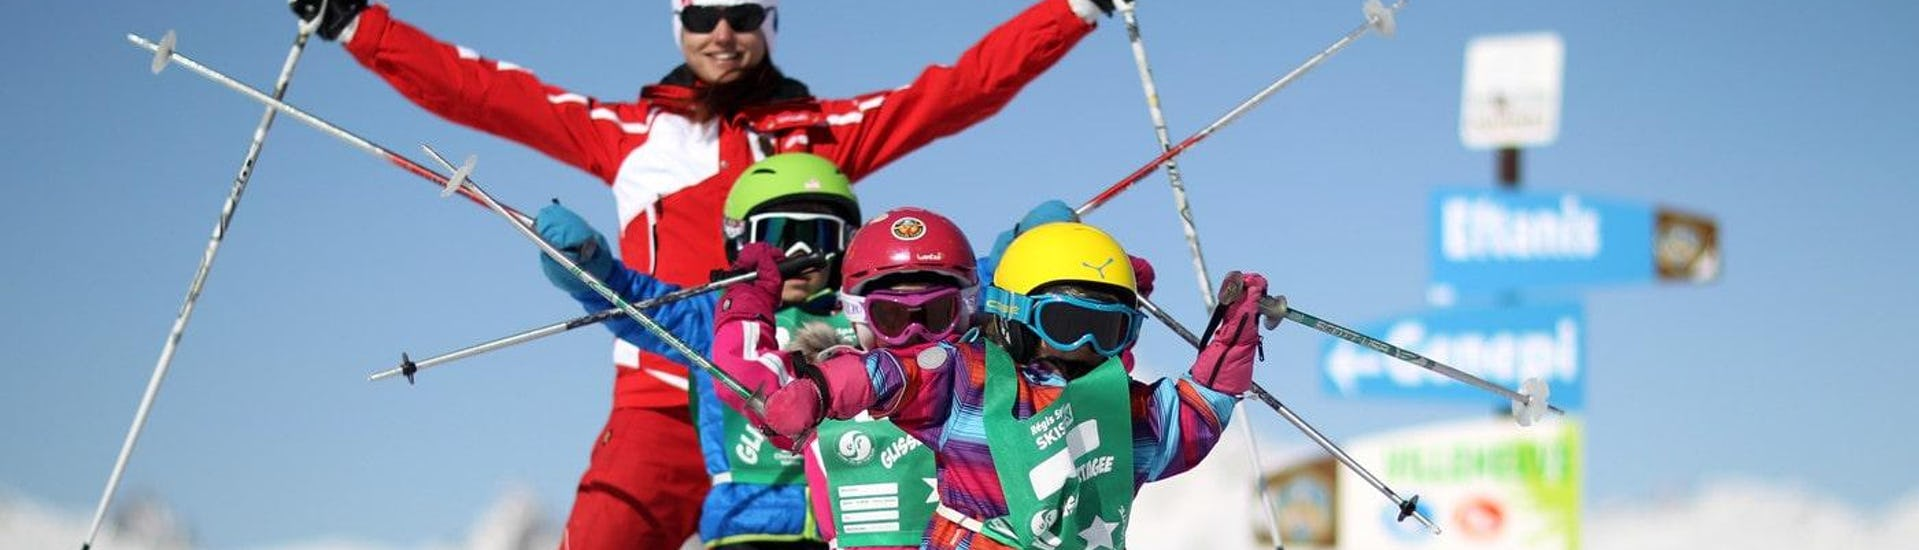 Kids are standing one behind the other with their ski poles up in the air during their Kids Ski Lessons (6-12 years) - Advanced with the ski school ESF Alpe d'Huez.